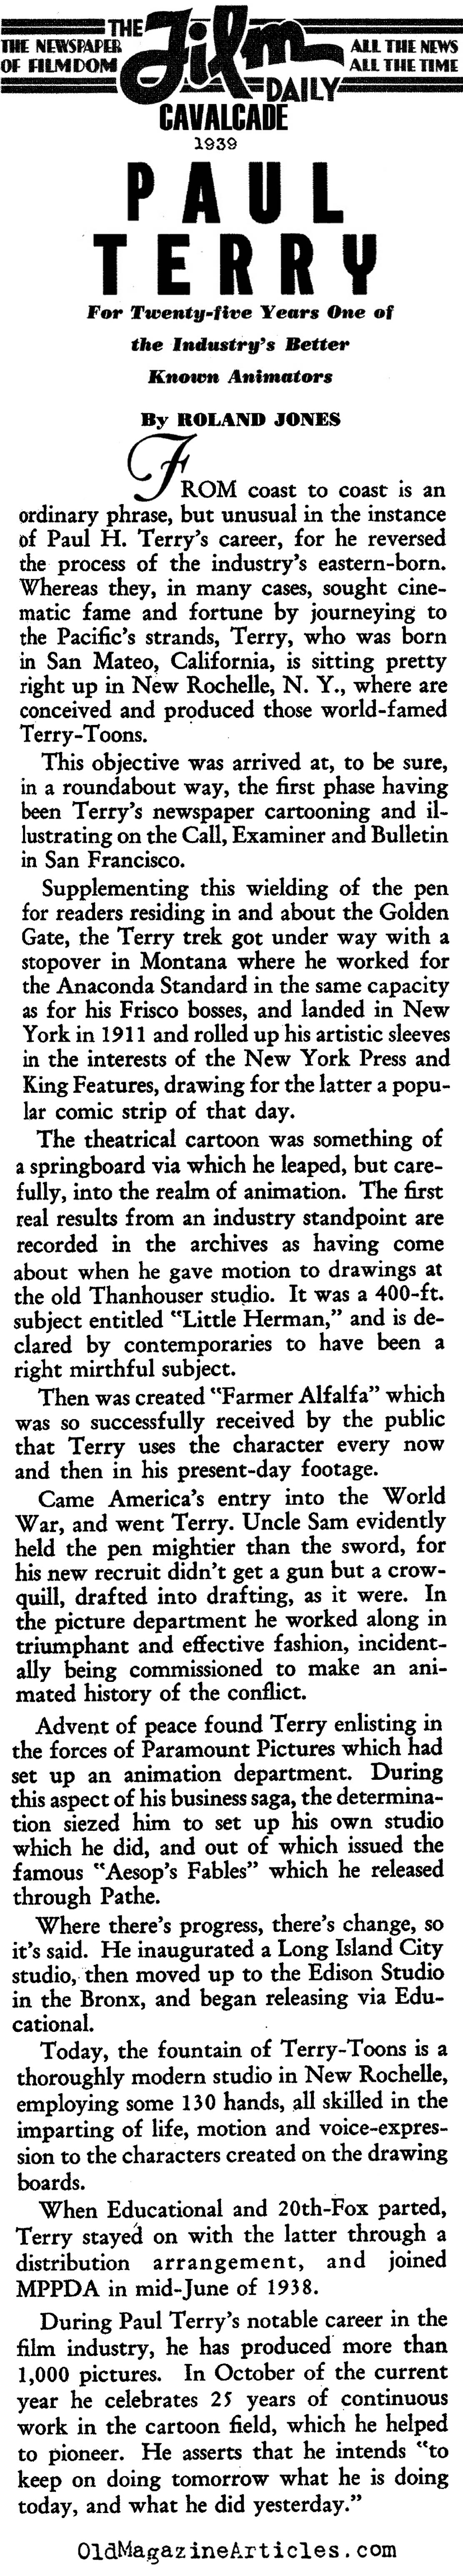 Paul Terry: The Other Animator  (Film Daily, 1939)